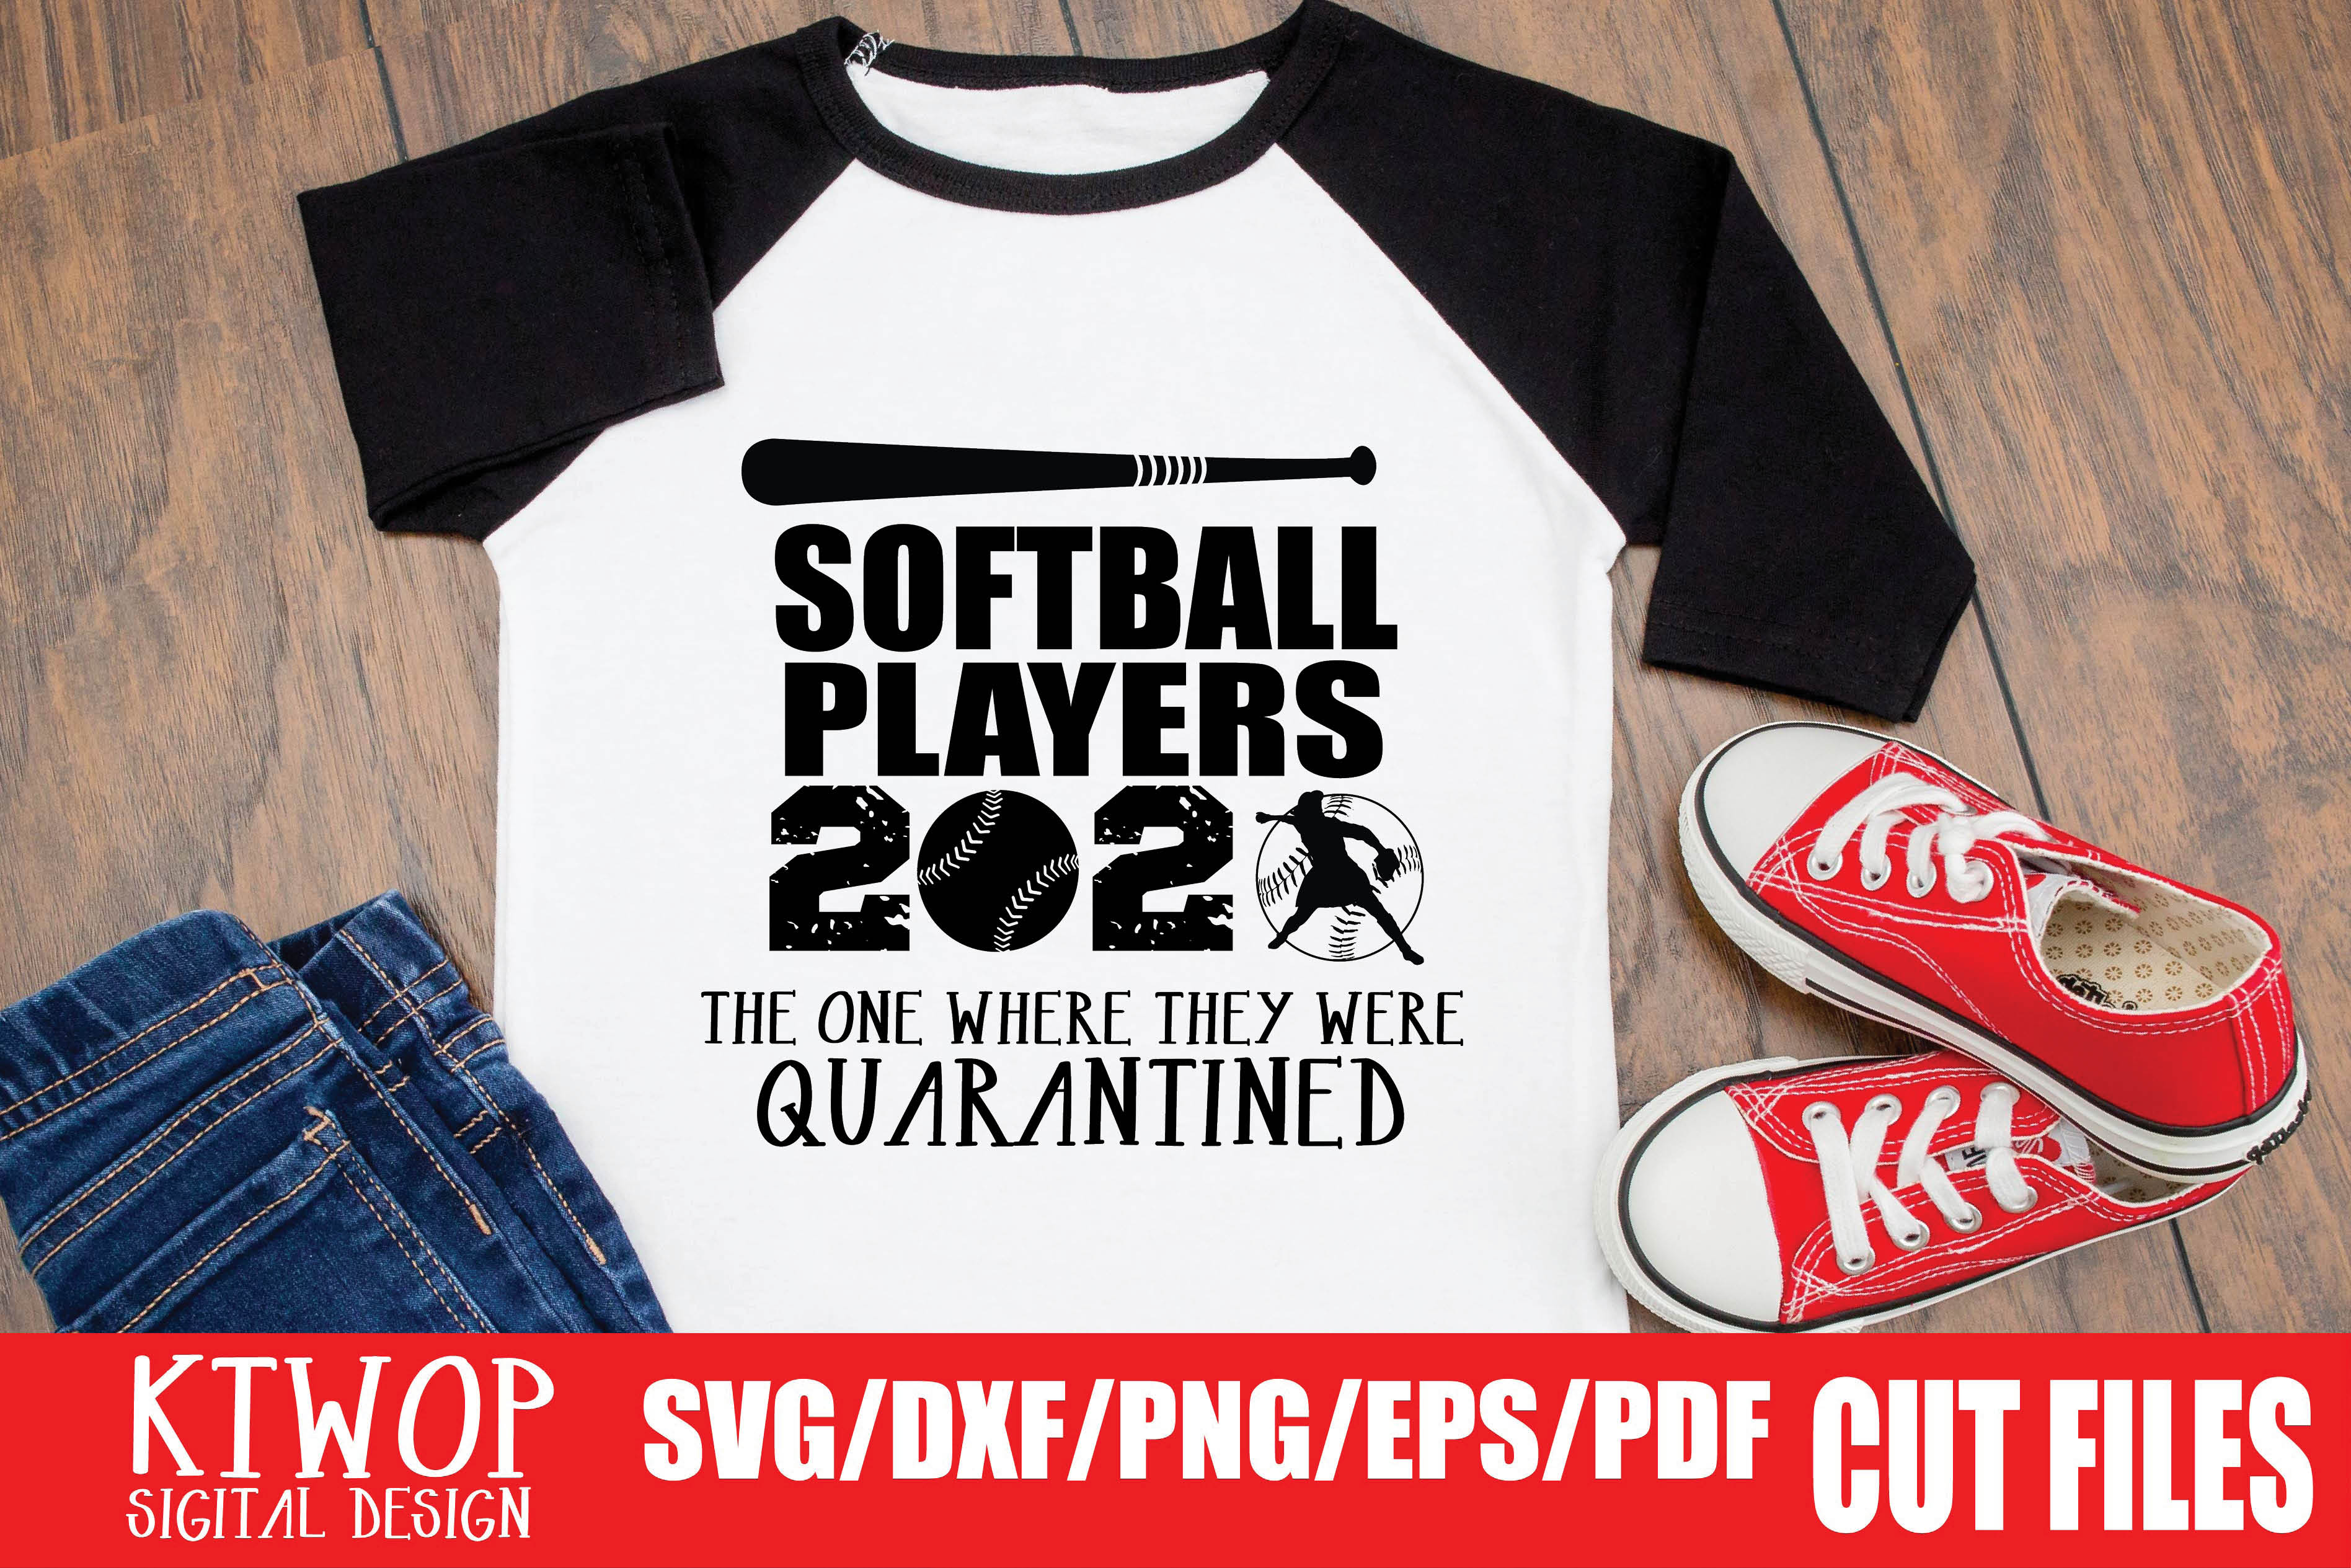 Download Free Softball Players Quarantine 2020 Graphic By Ktwop Creative Fabrica for Cricut Explore, Silhouette and other cutting machines.